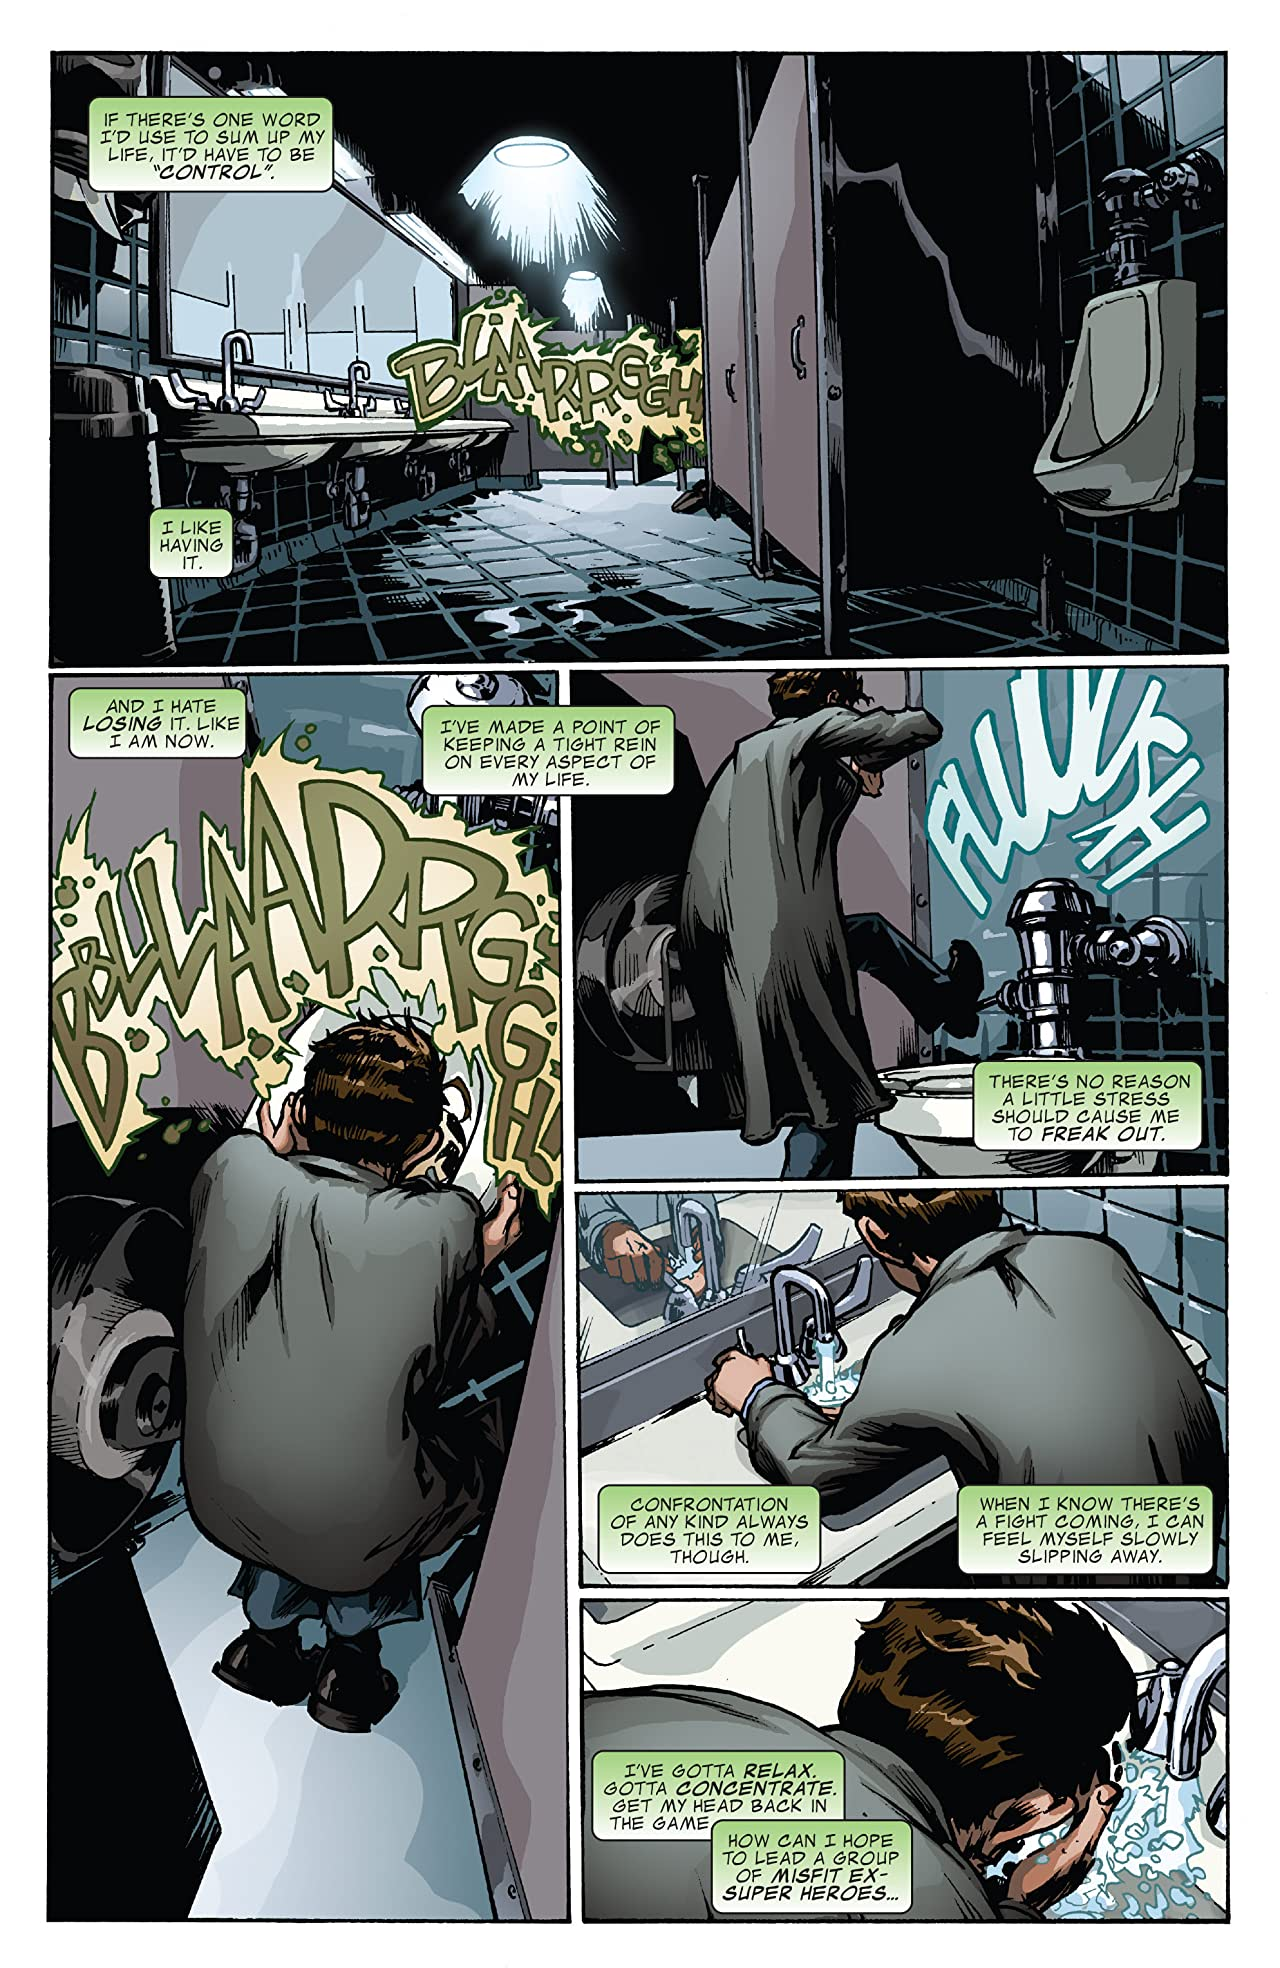 The Loners (2007) #3 (of 6)